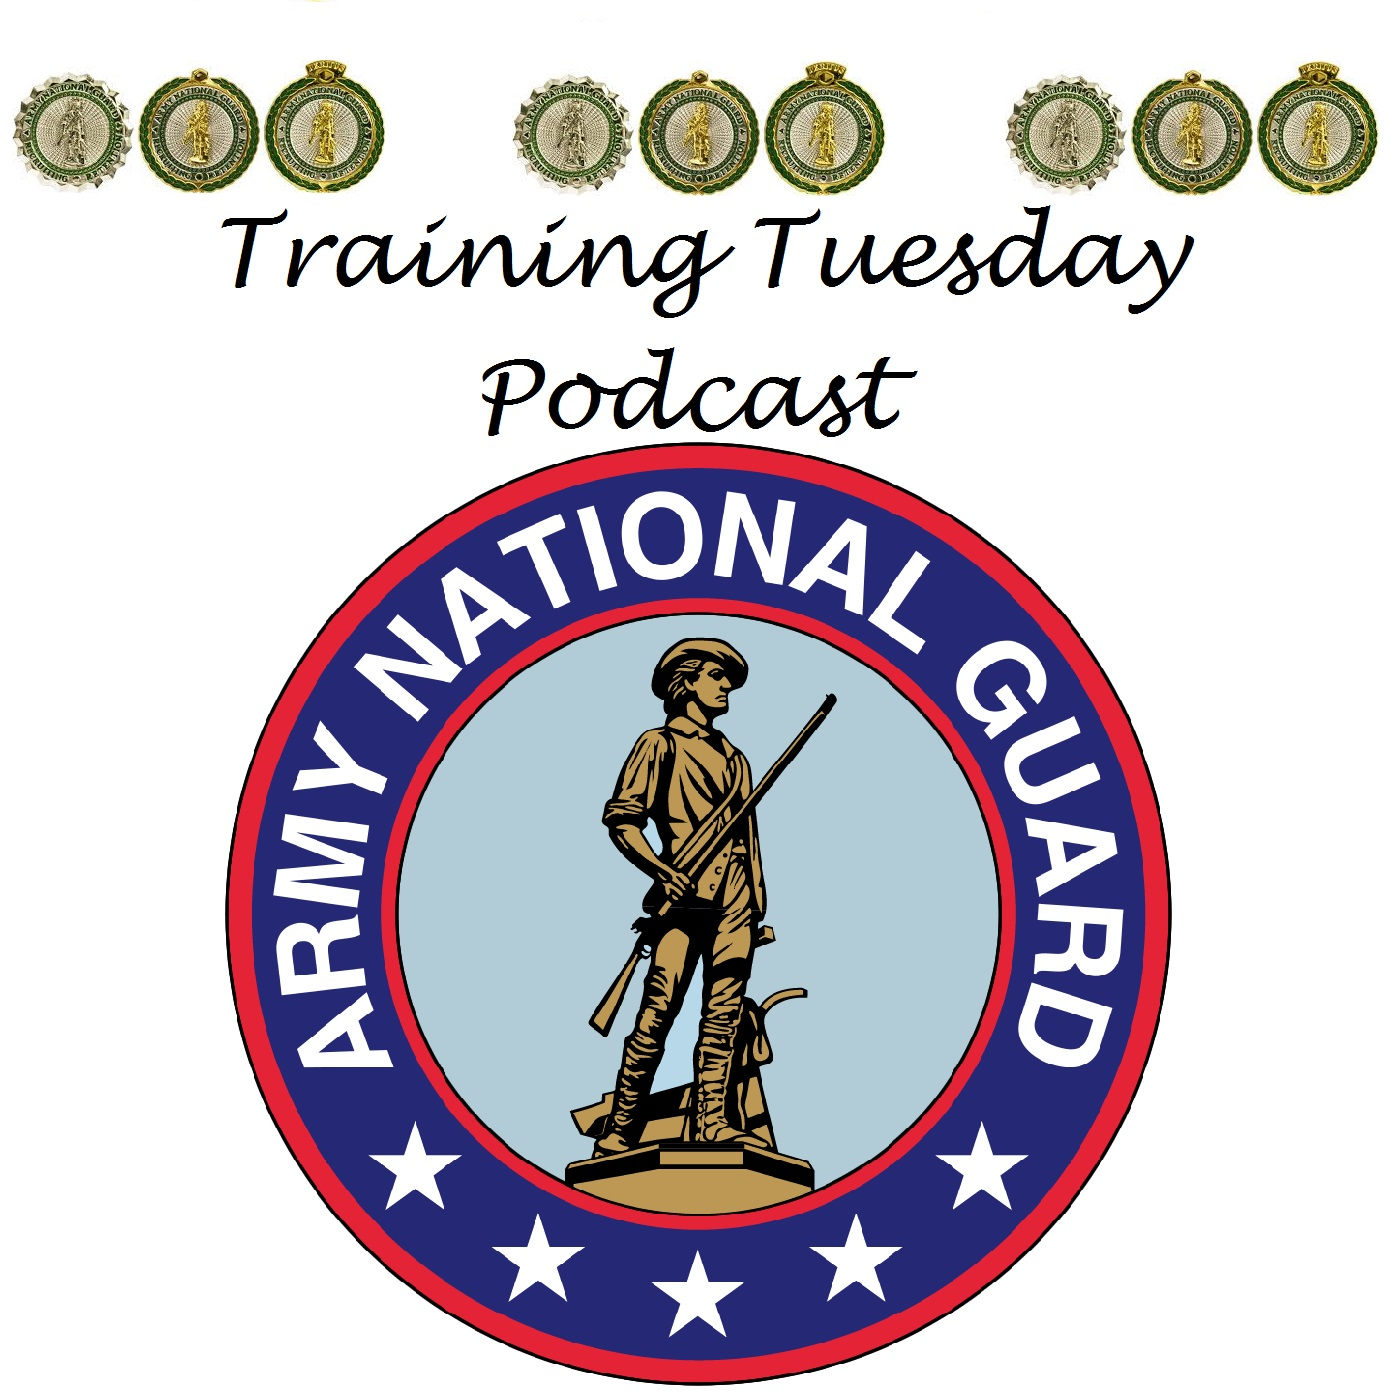 TRAINING TUESDAY PODCAST